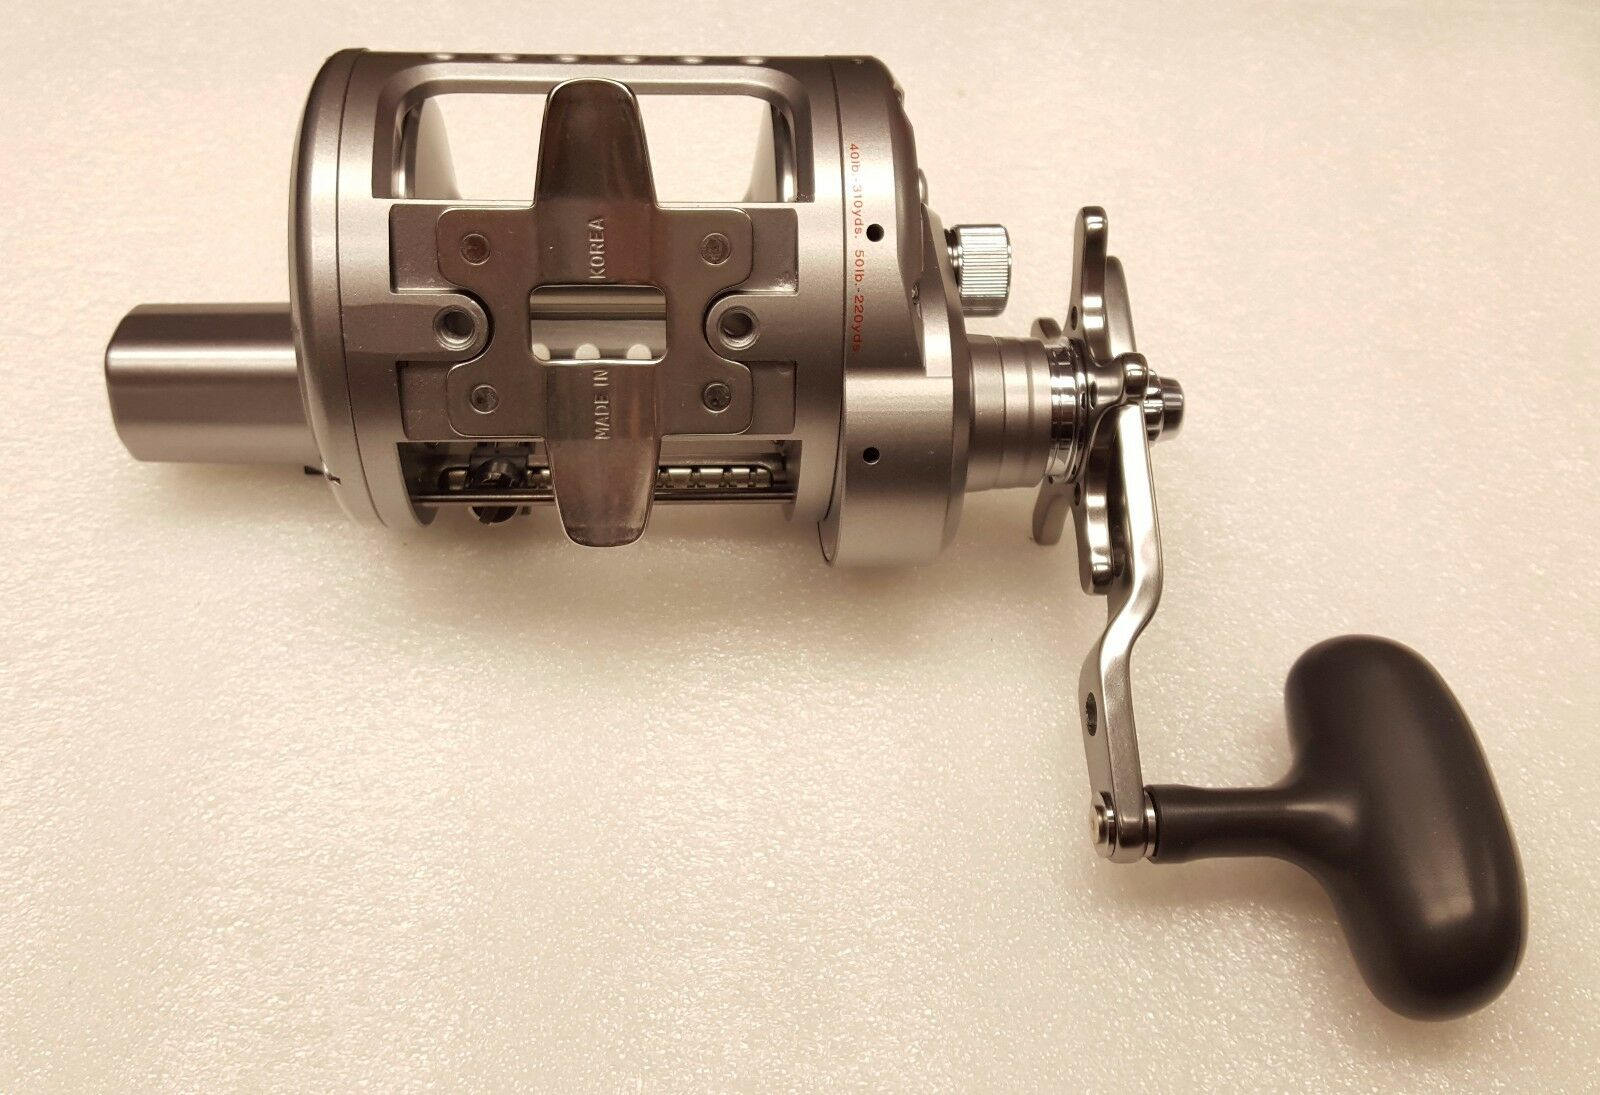 6bf635c8165 Daiwa Sttlw50lcha Saltist Levelwind Line Counter High Speed Reel for sale  online | eBay